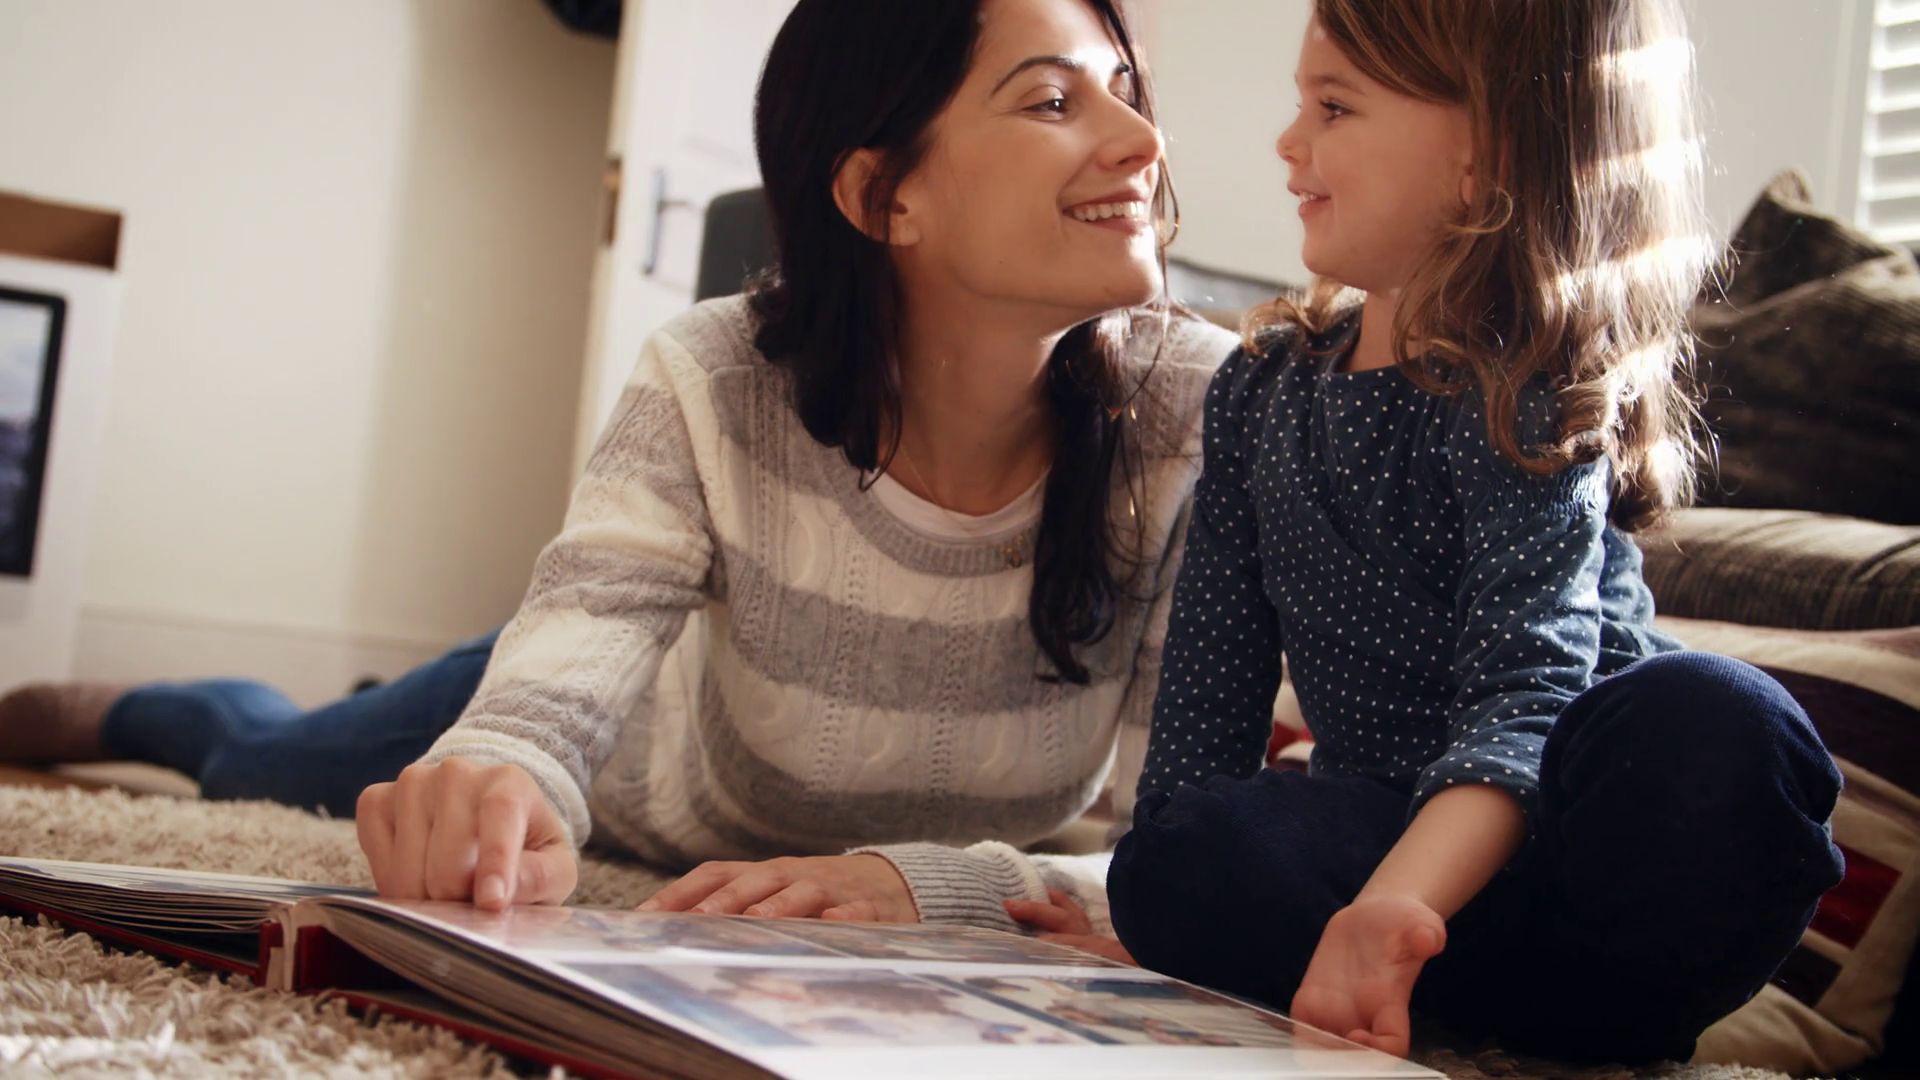 mother-and-daughter-at-home-looking-through-photo-album_sqpwhkyfg_thumbnail-full01